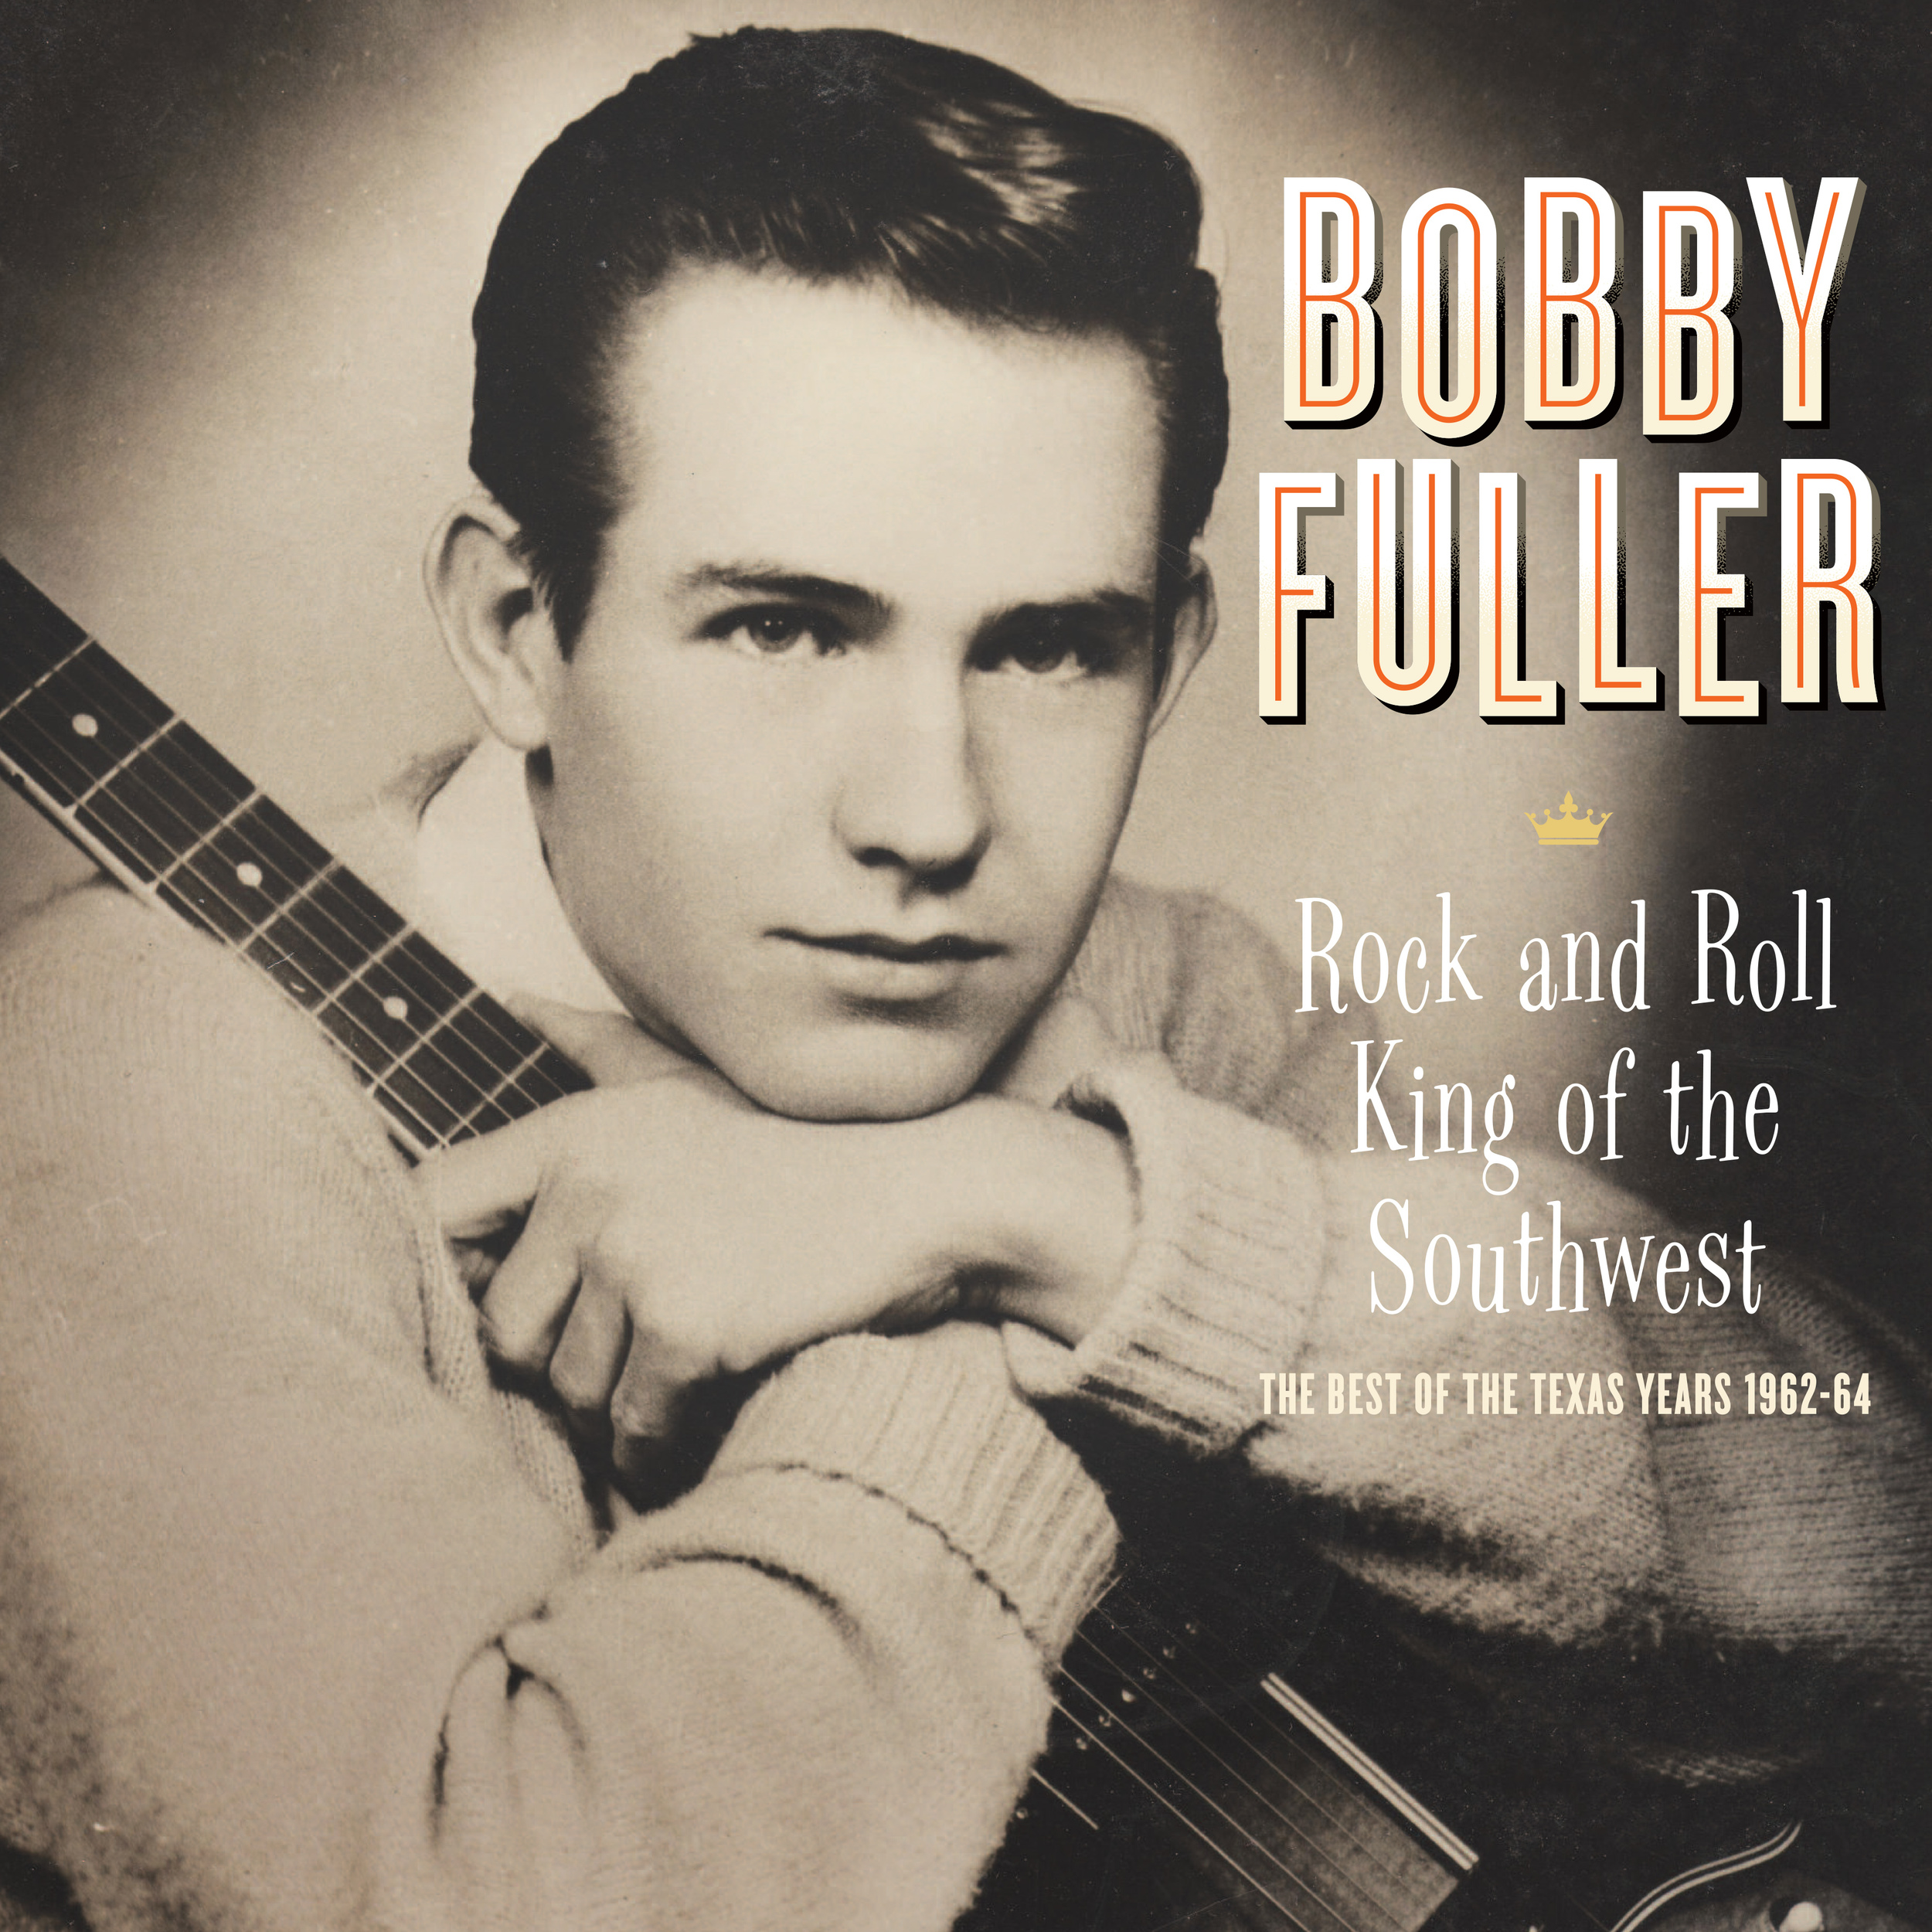 Bobby Fuller - Rock and Roll King of the Southwest LP cover